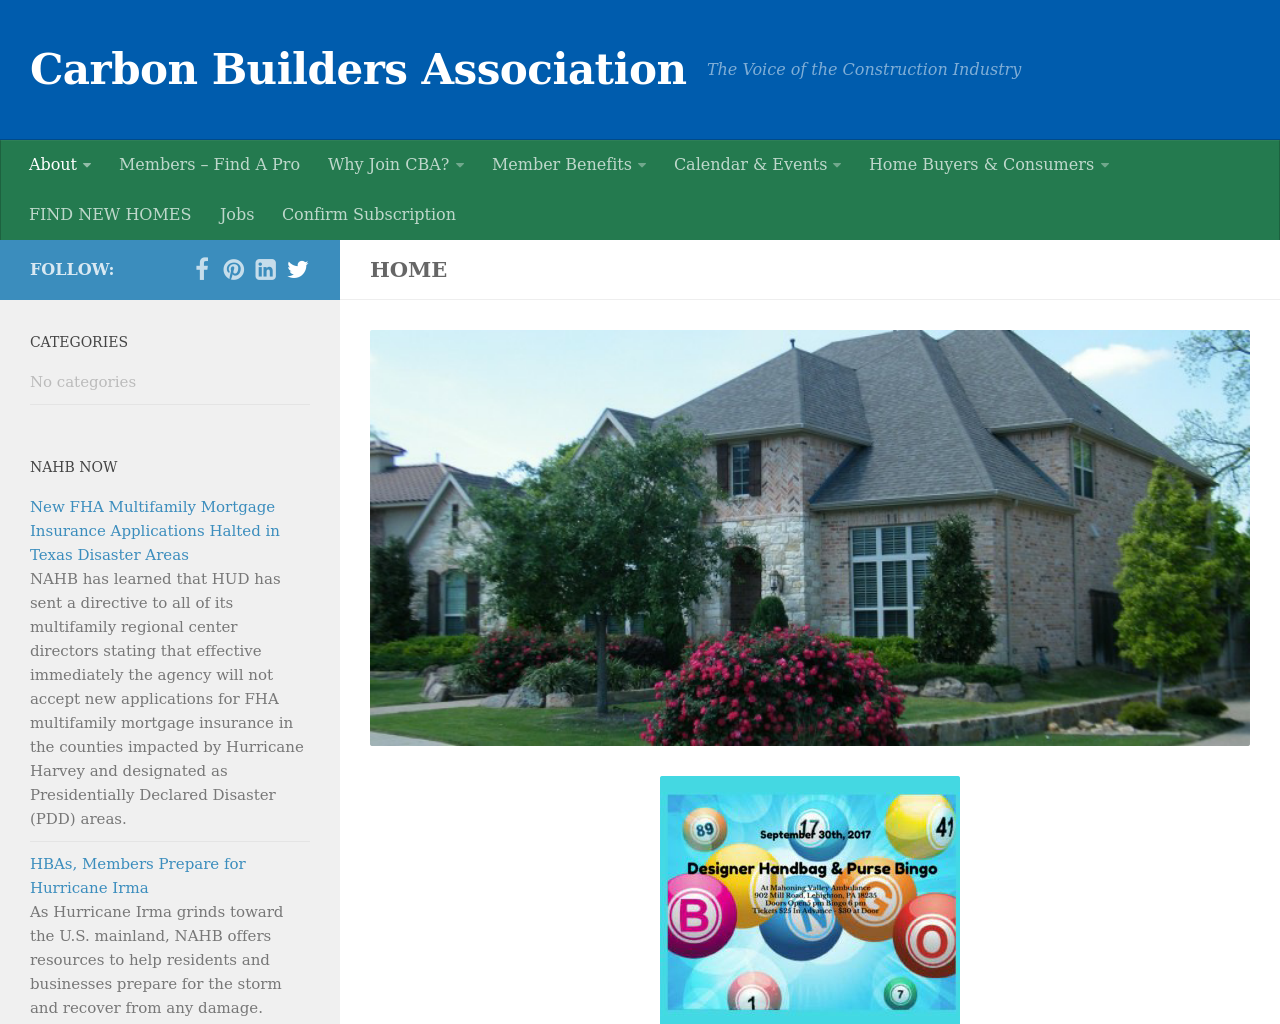 Carbon-Builders-Association-Advertising-Reviews-Pricing